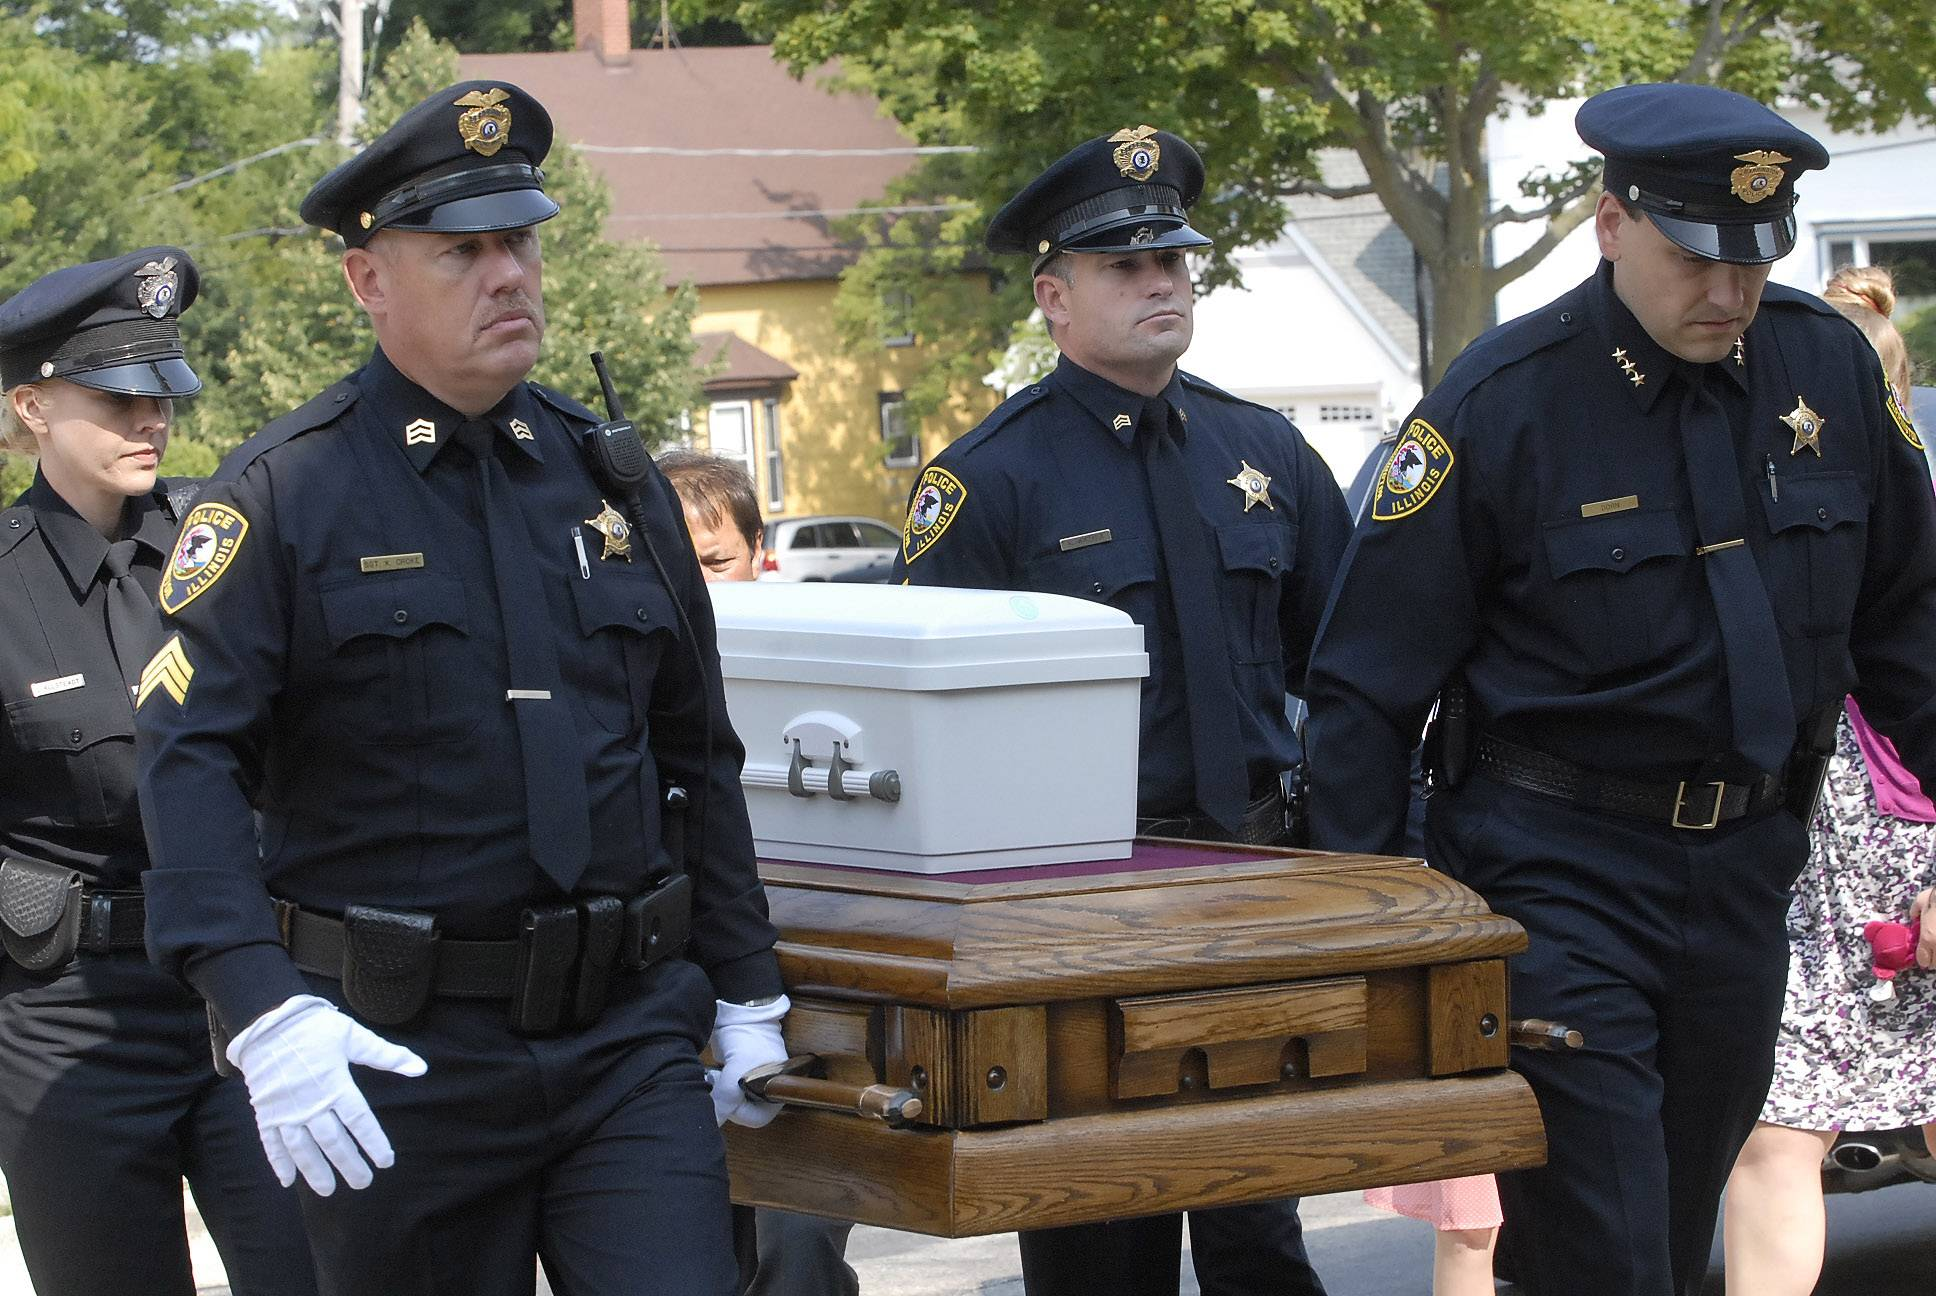 Pallbearers carry the casket of 7-month-old Mya Edwards, who starved to death in January, into St. Anne Catholic Church in Barrington before her funeral Thursday.